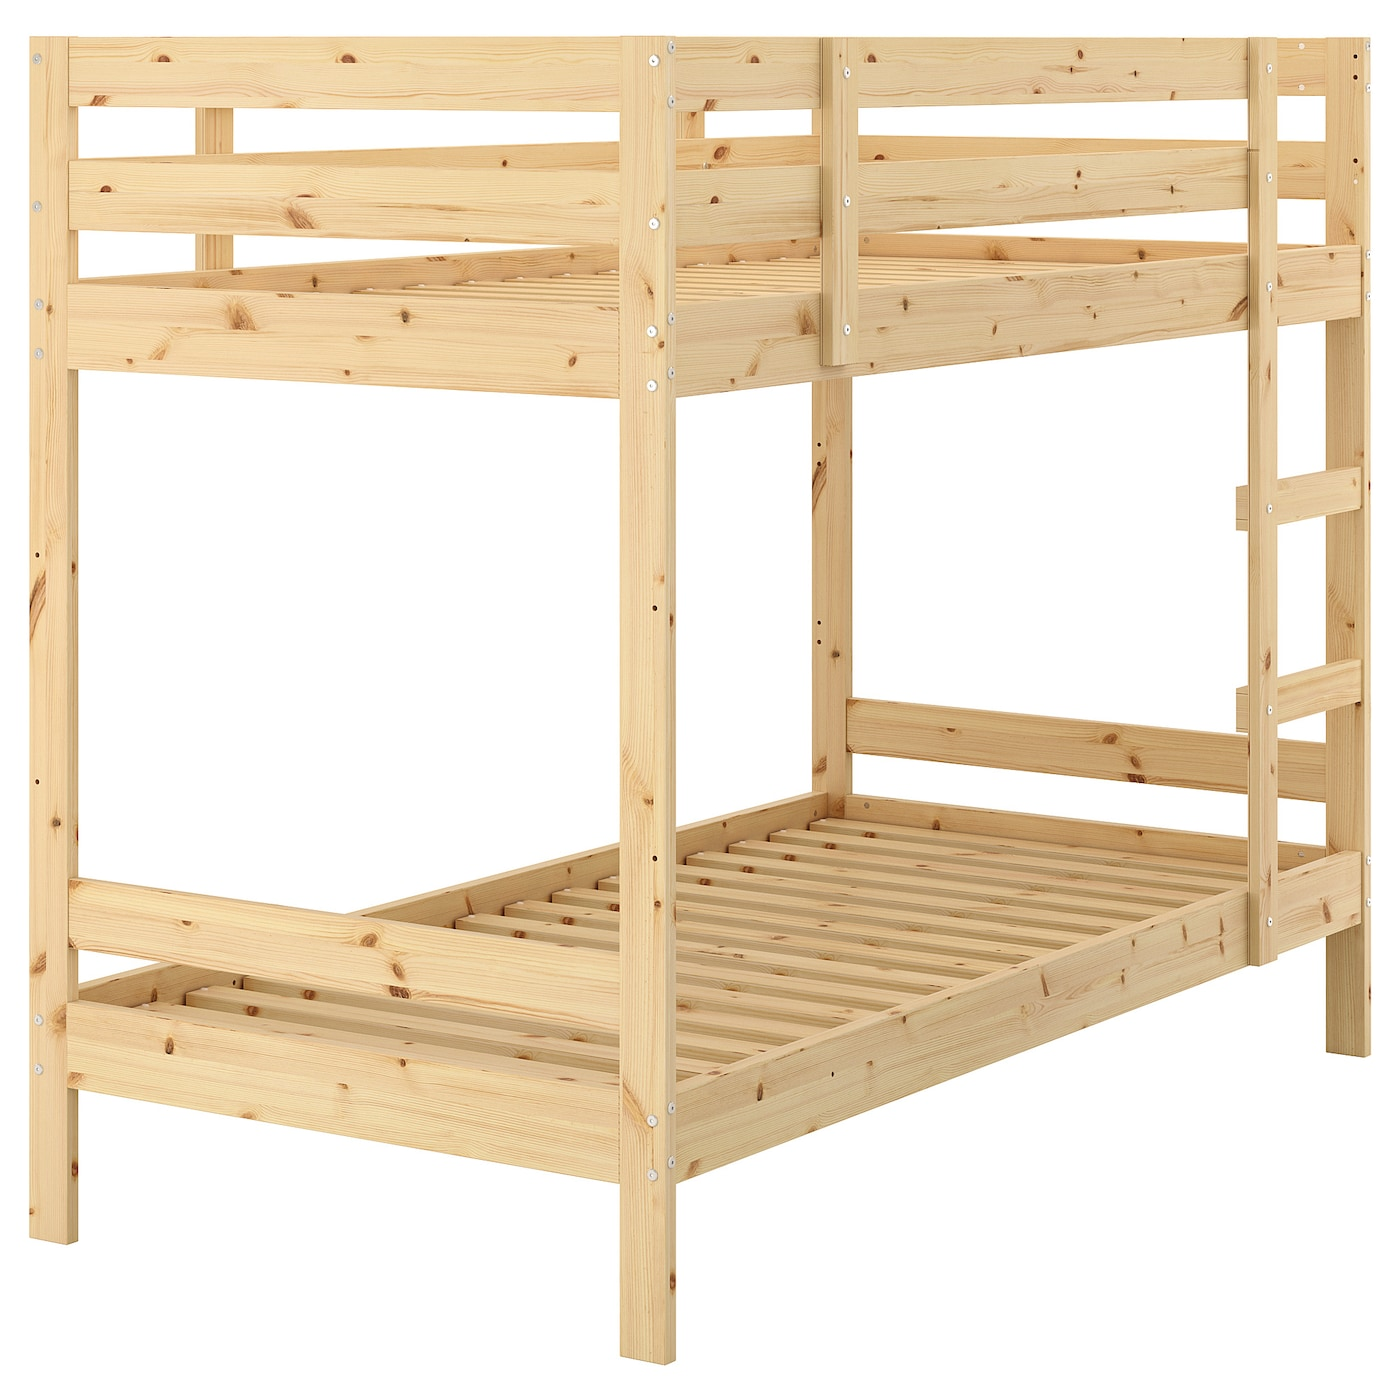 Mydal bunk bed frame pine 90x200 cm ikea How to buy a bed